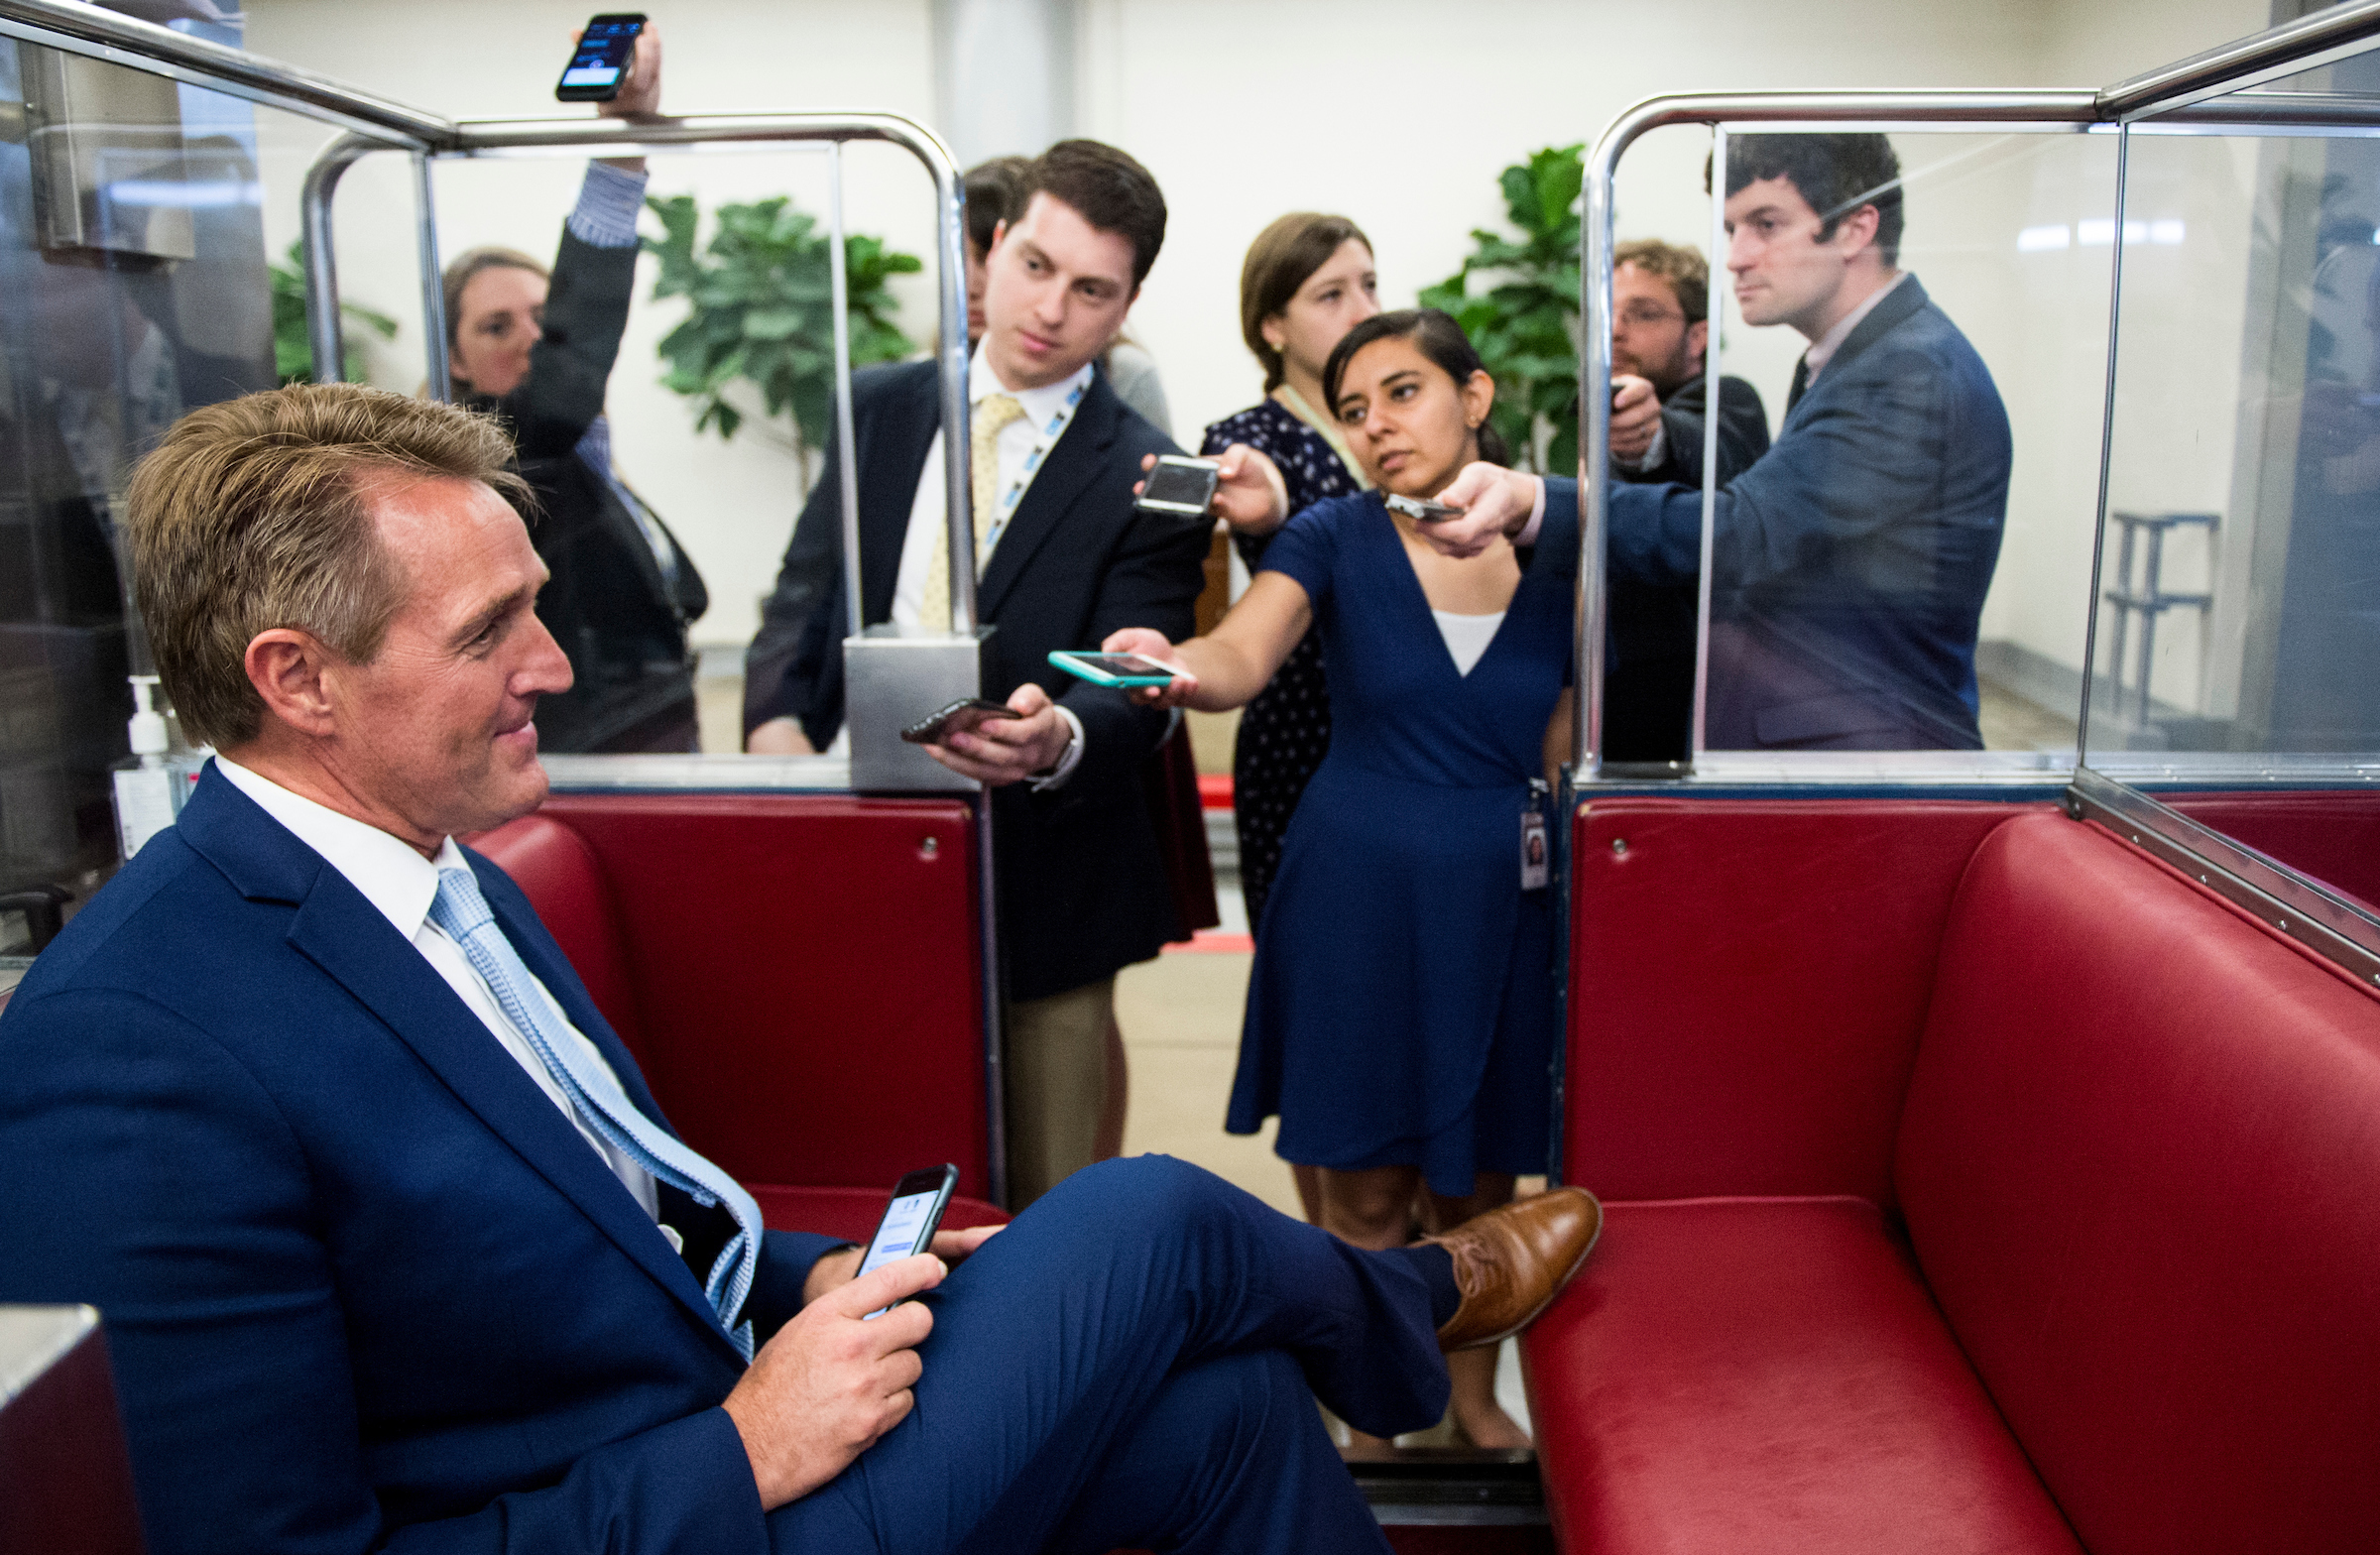 Arizona Sen. Jeff Flake talks with reporters as he rides the Senate subway to the Russell Senate Office Building on Tuesday. (Bill Clark/CQ Roll Call)